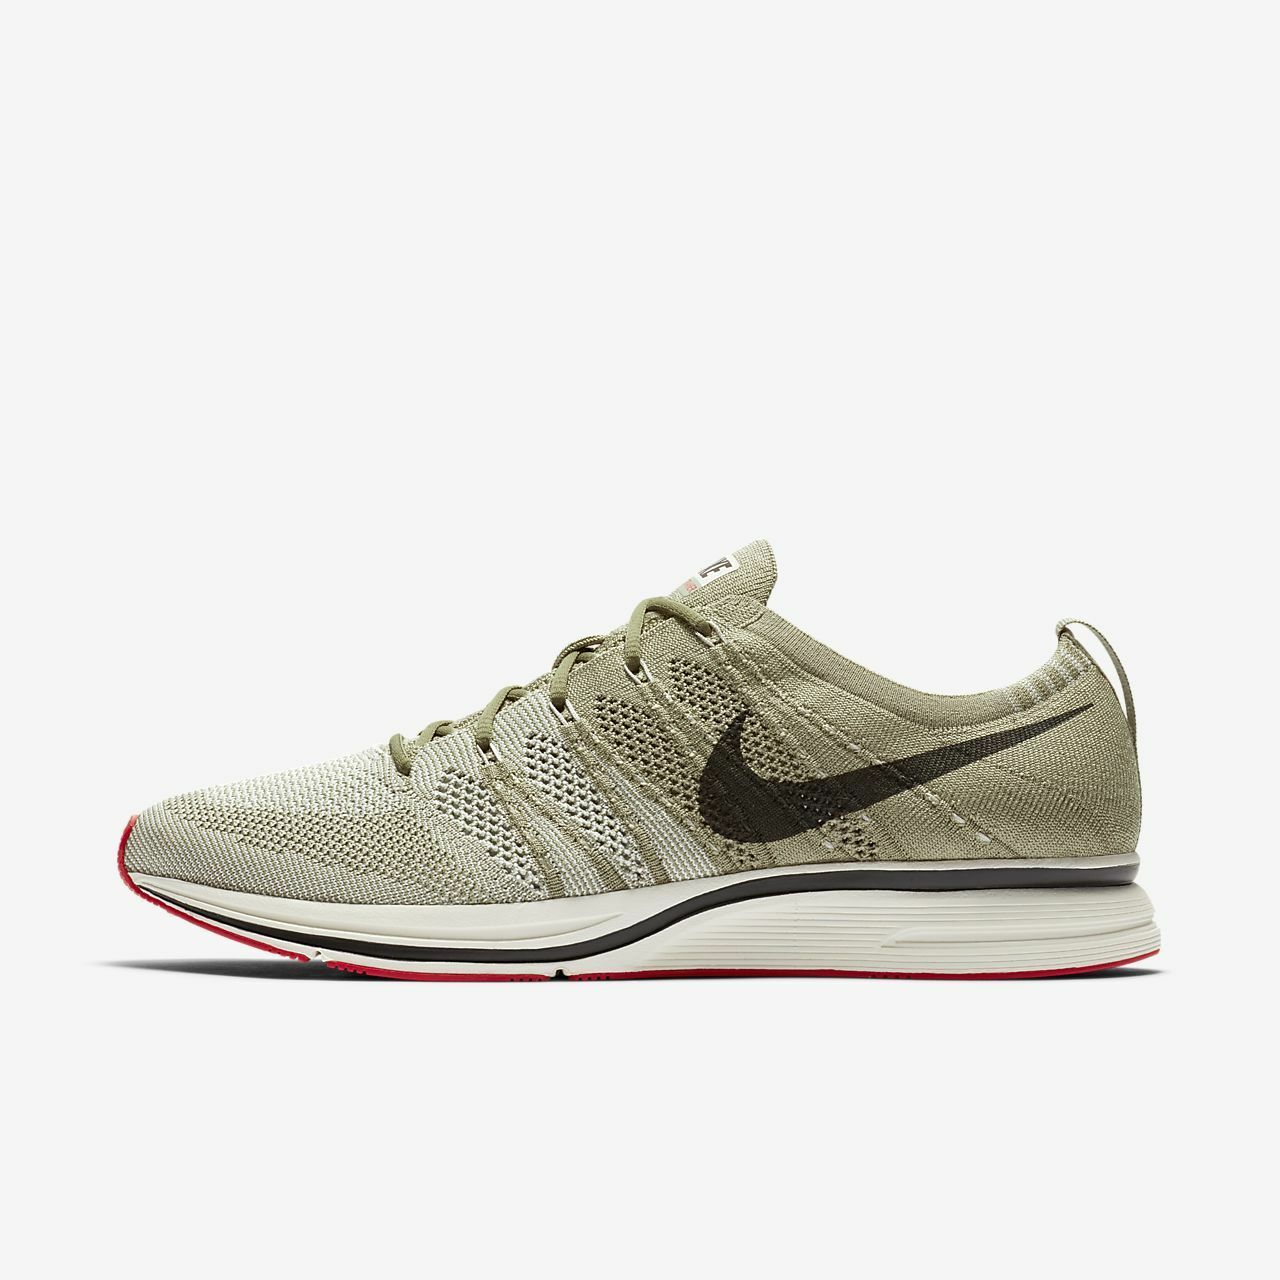 Nike uomini flyknit trainer riflettente correndo brown grey ah8396-201 us7-11 04